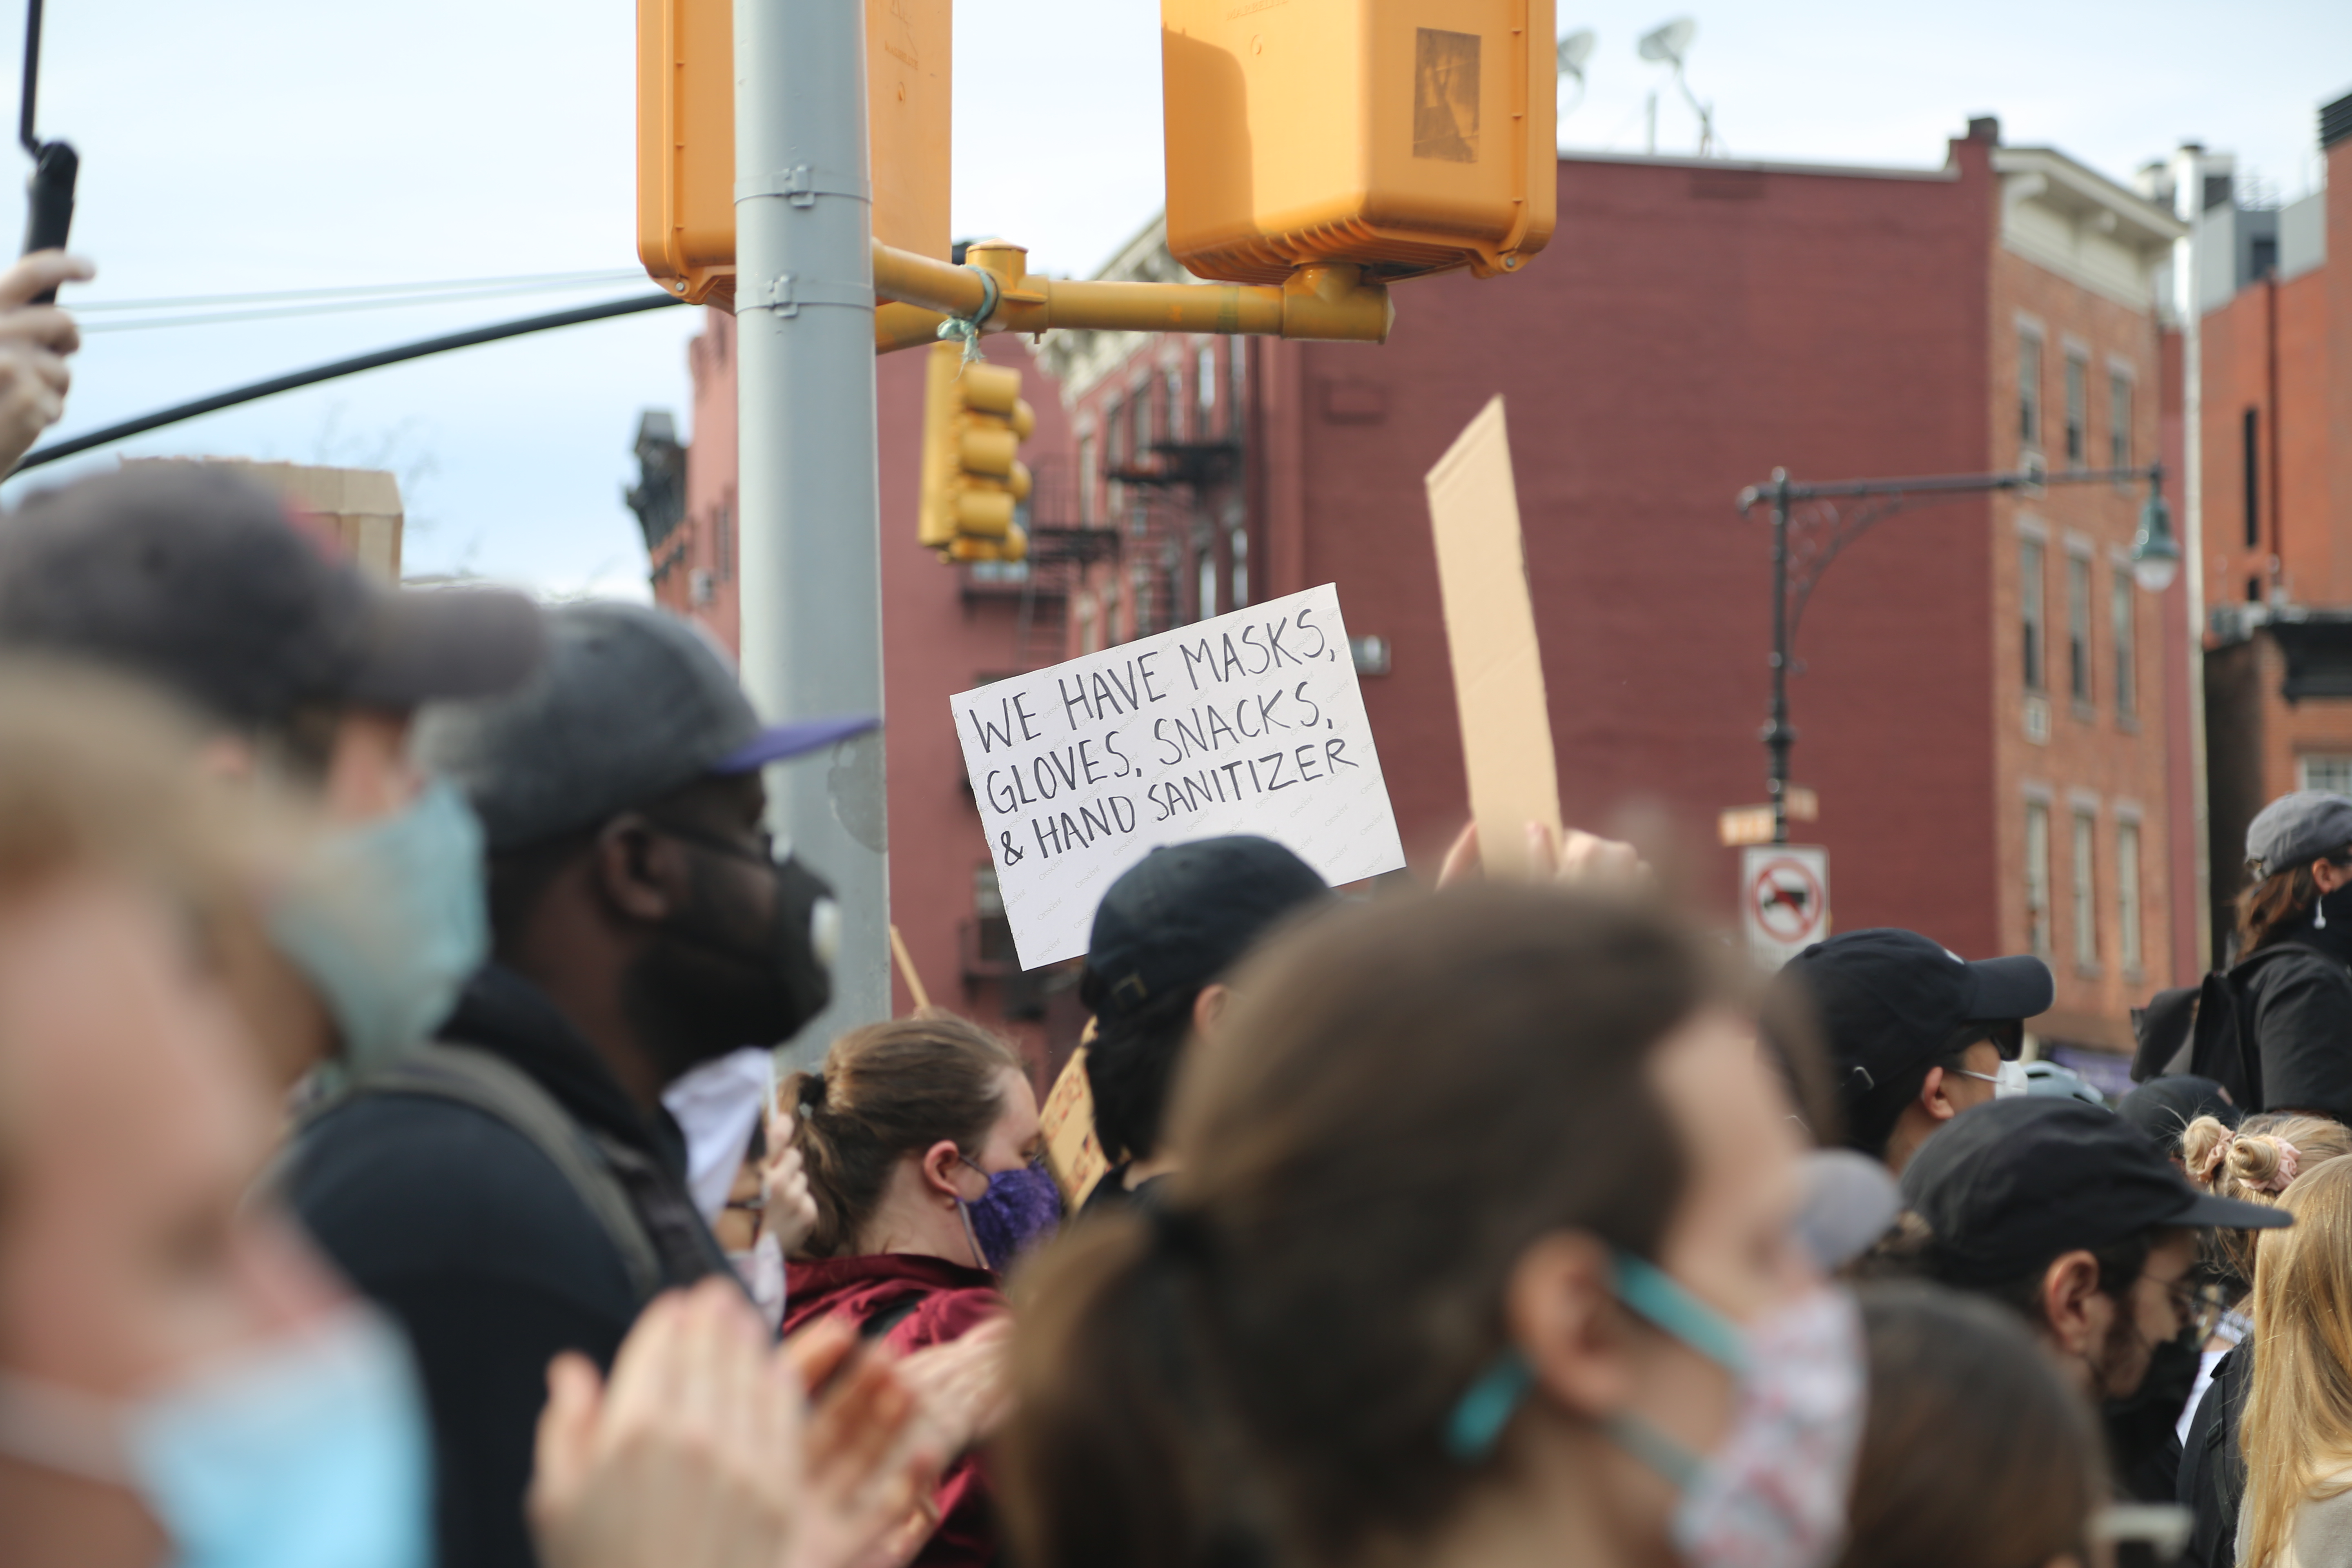 Protesters hold up signs during protests in New York.